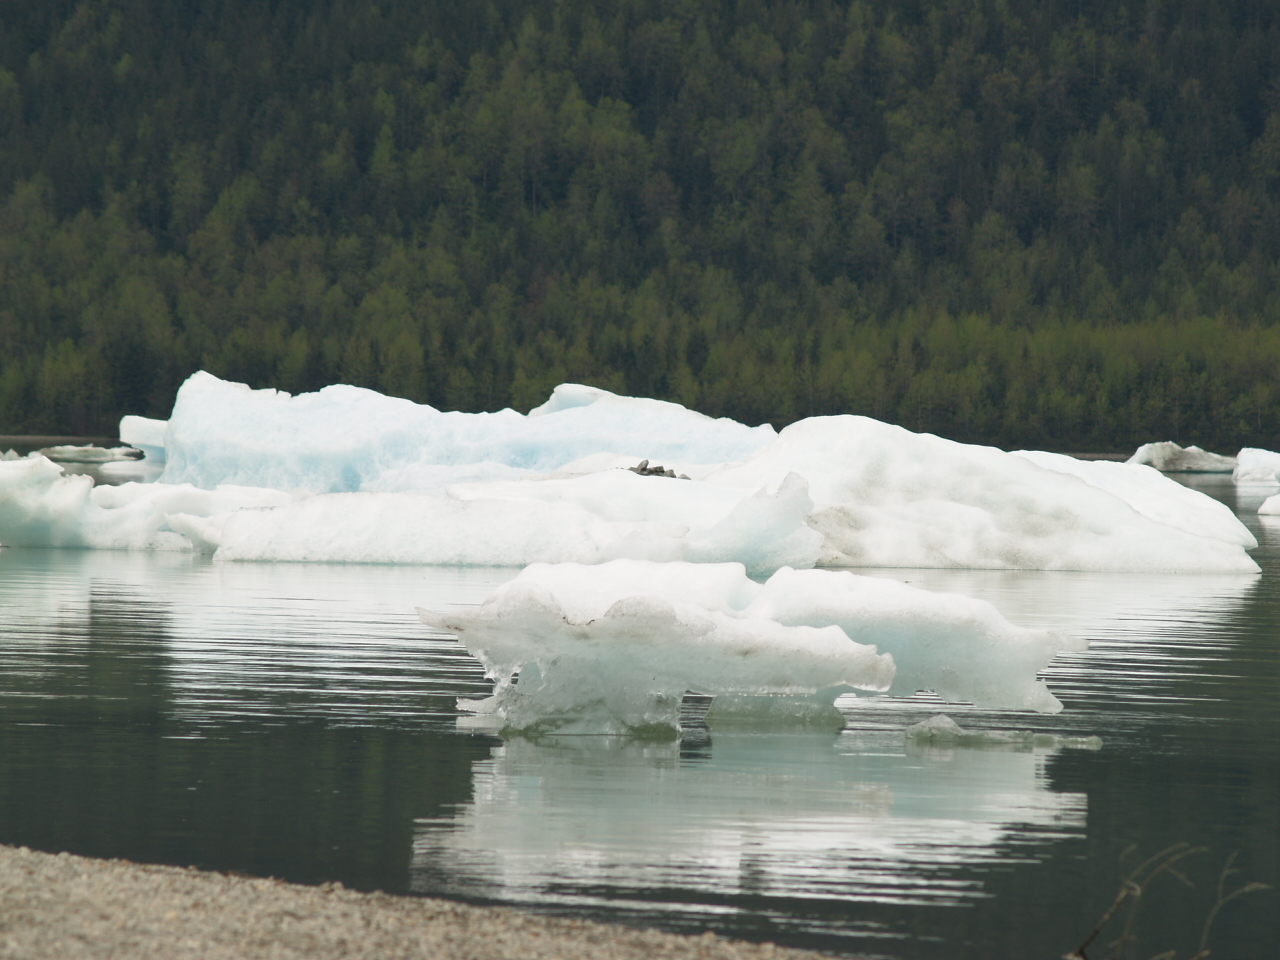 Little icebergs at Mendenhall Lake, Juneau (2007).